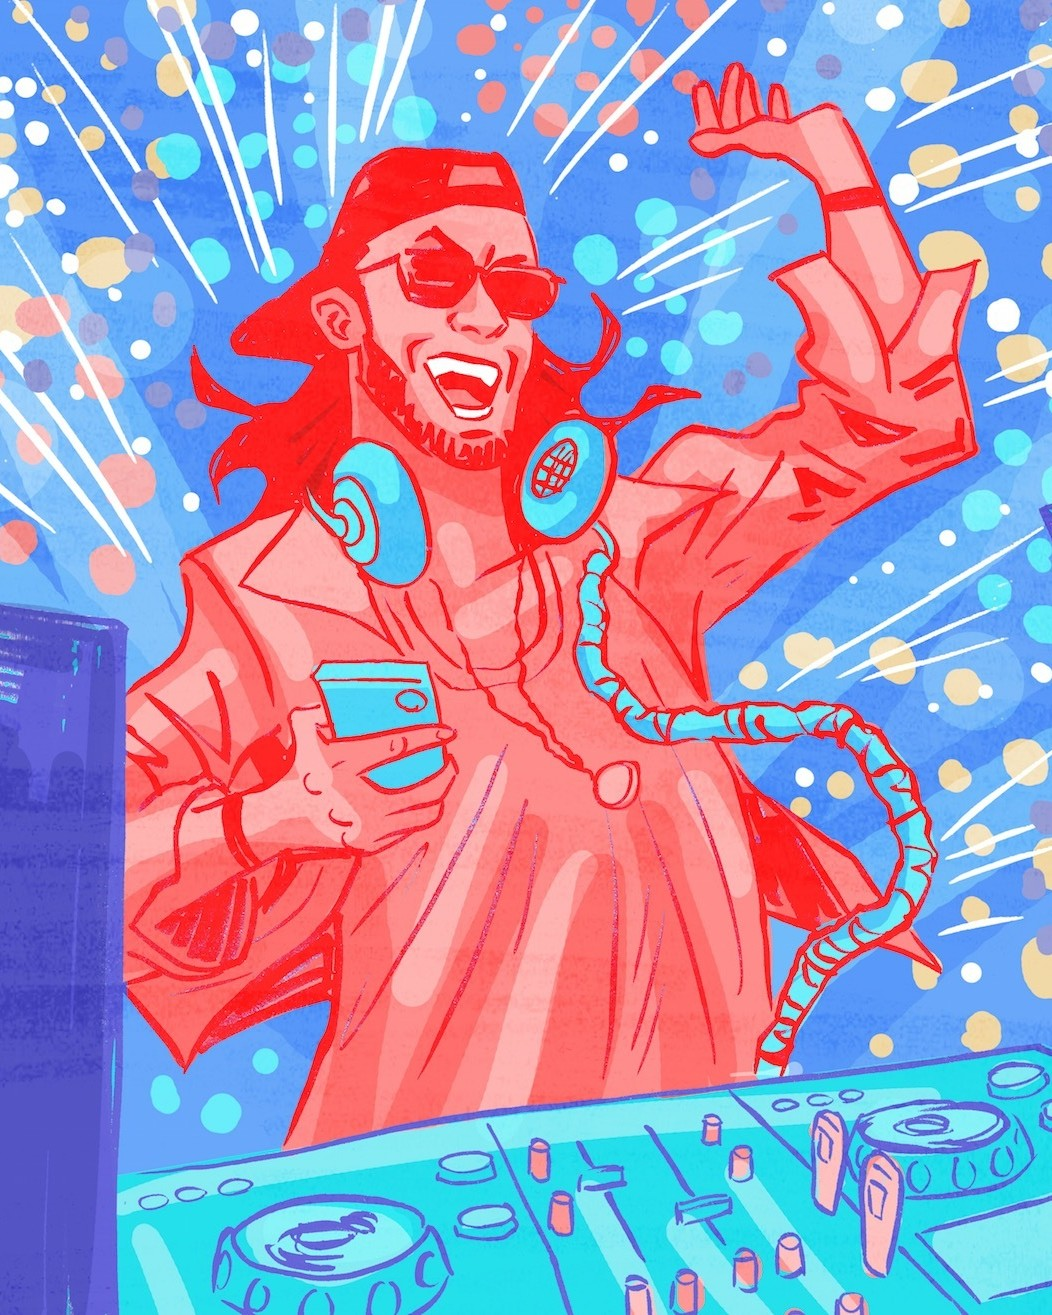 Everything You Need to Know About Post-EDM, Which Is a Thing Now